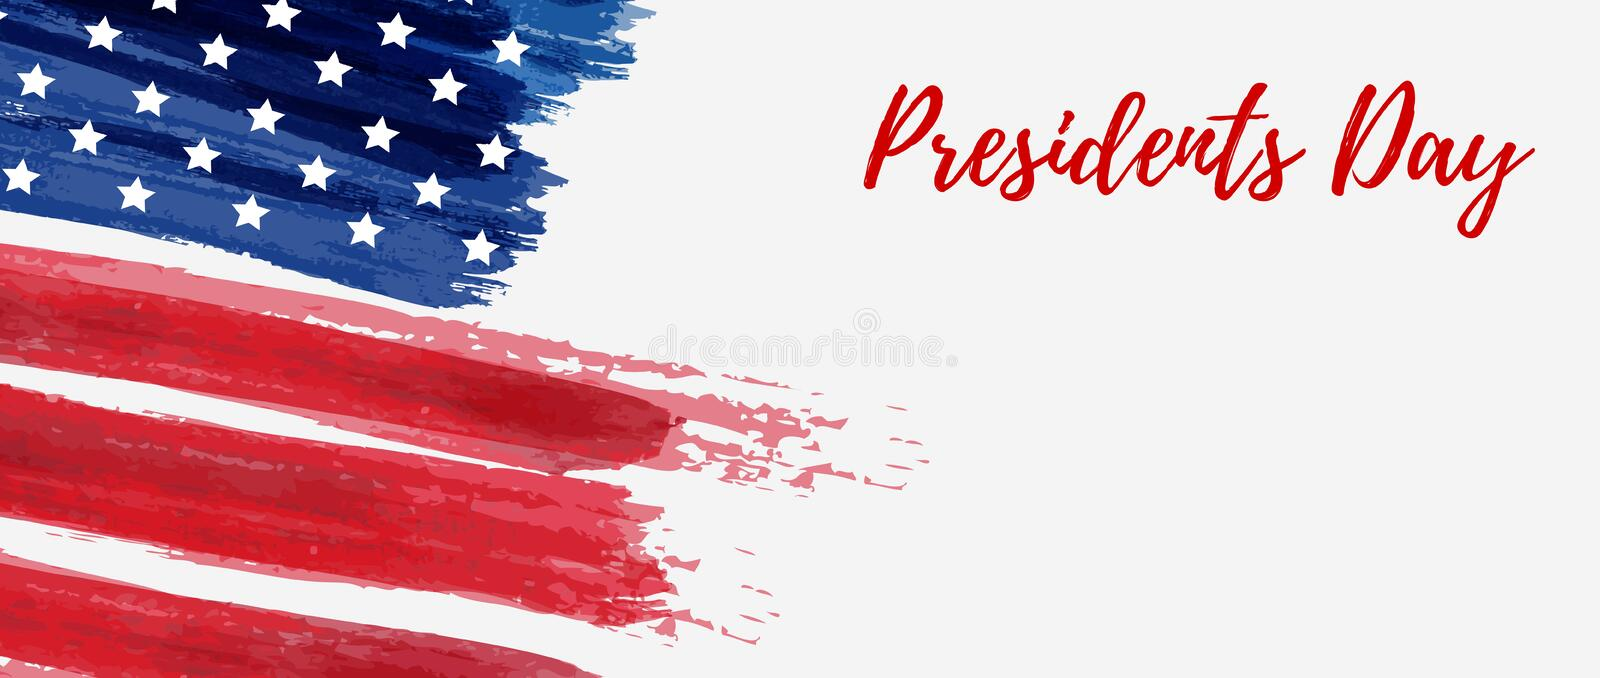 USA Presidents Day holiday background. USA Presidents day background. Vector abstract grunge brushed flag with text. Template for horizontal banner royalty free illustration